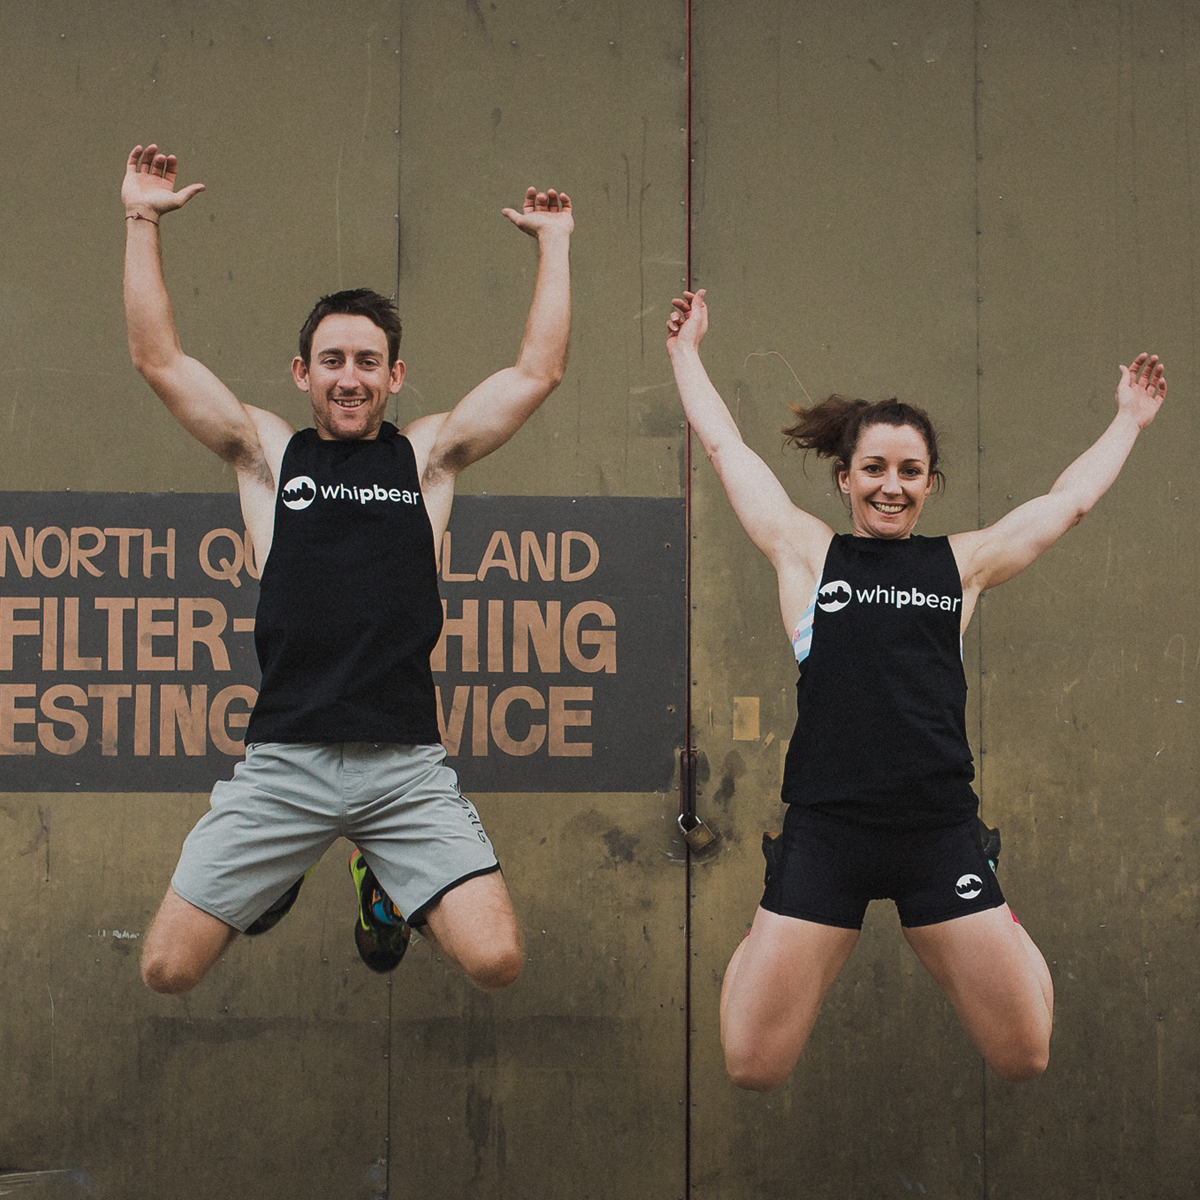 Happy man and woman jumping for joy wearing Whipbear apparel